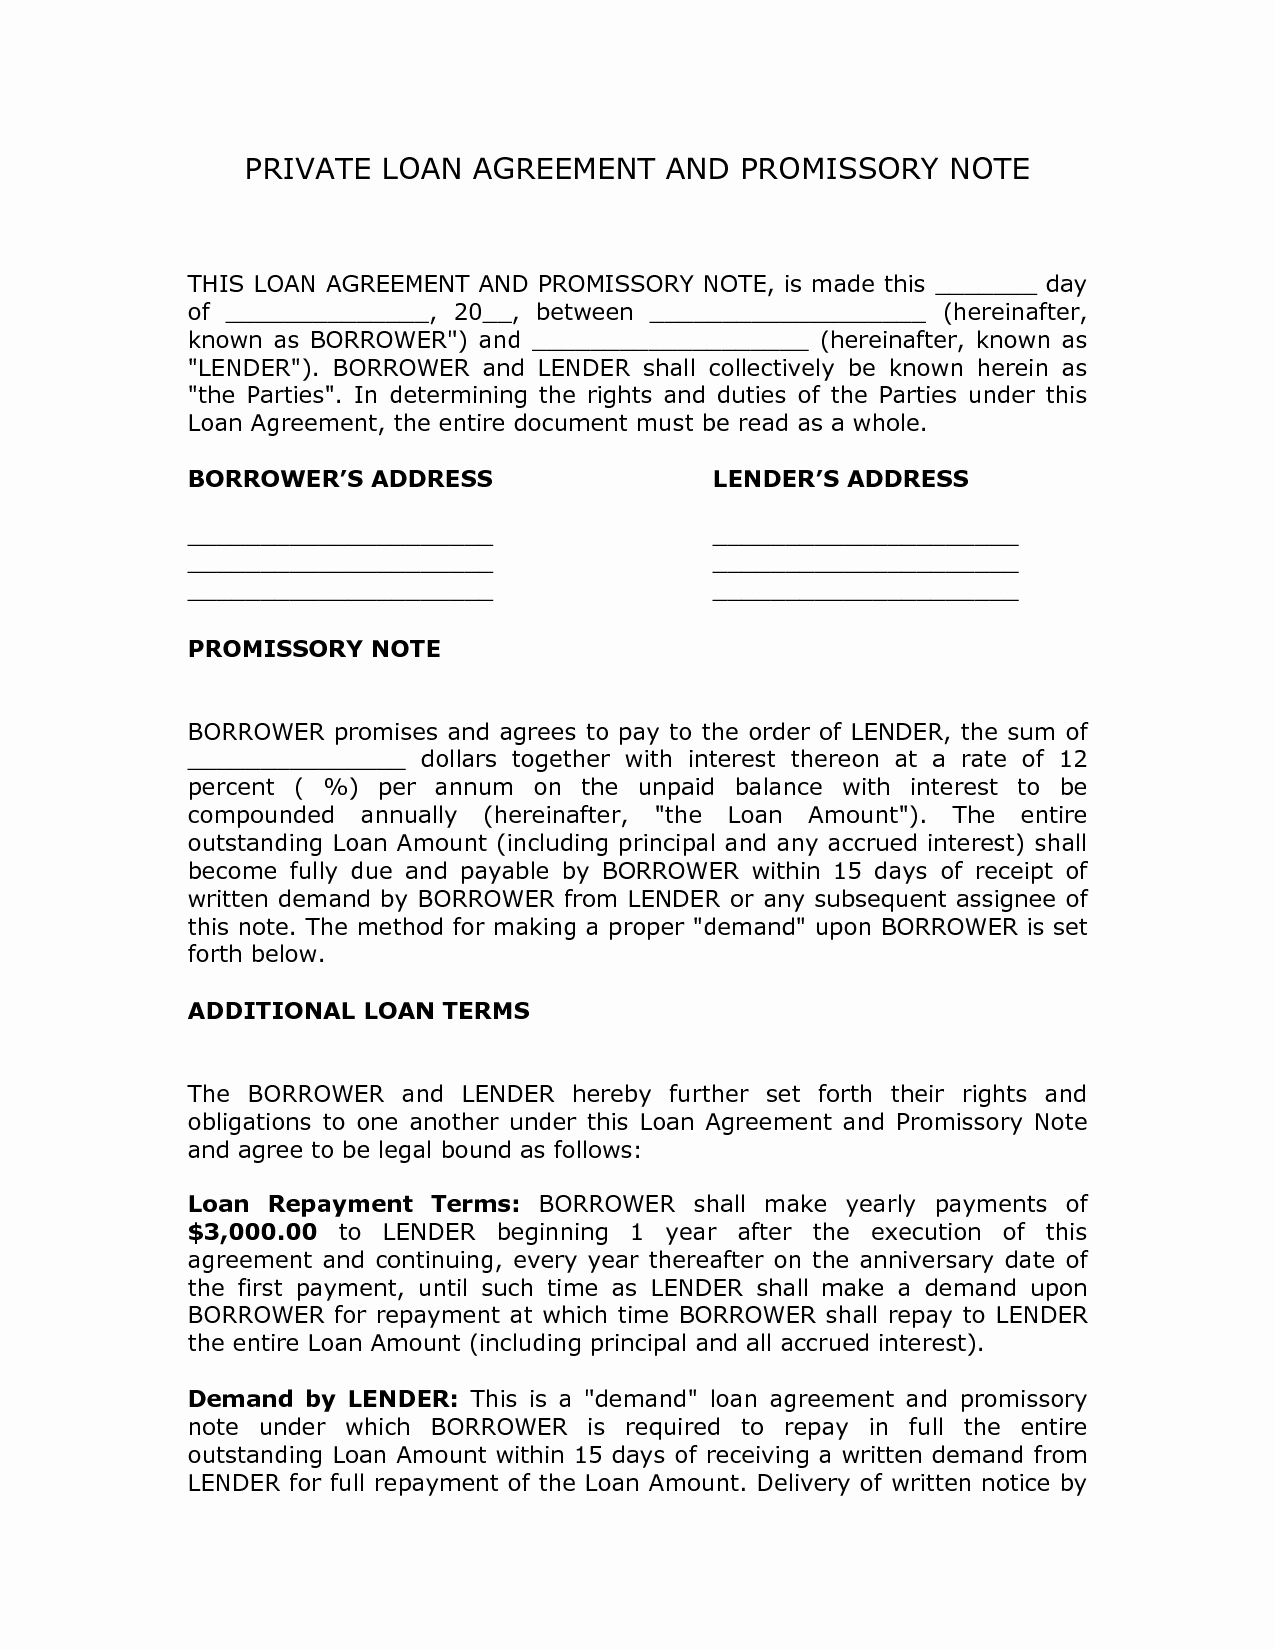 Loan Contract Template Free Beautiful Private Loan Agreement Template Free Free Printable